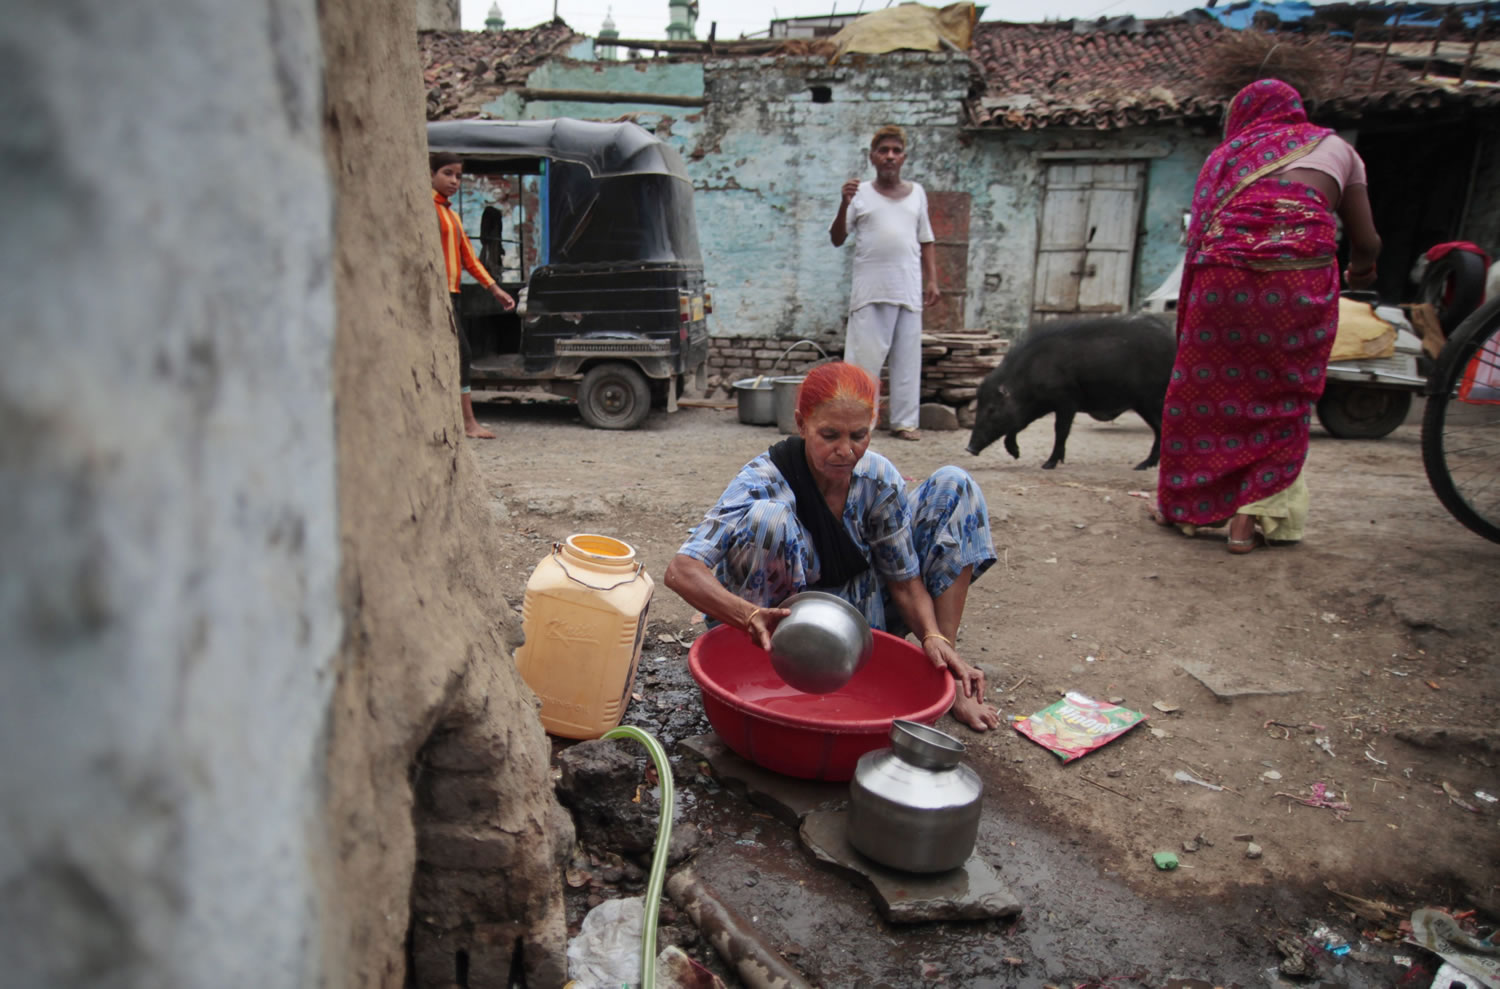 In this May 10, 2012 photo, Fatima Munshi collects water for domestic consumption from a community faucet outside her home in Khandwa, India. Living in Australia, Saroo Brierley, 30, was reunited with his biological mother, Munshi, in February 2012, 25 years after an ill-fated train ride left him an orphan on the streets of Calcutta.